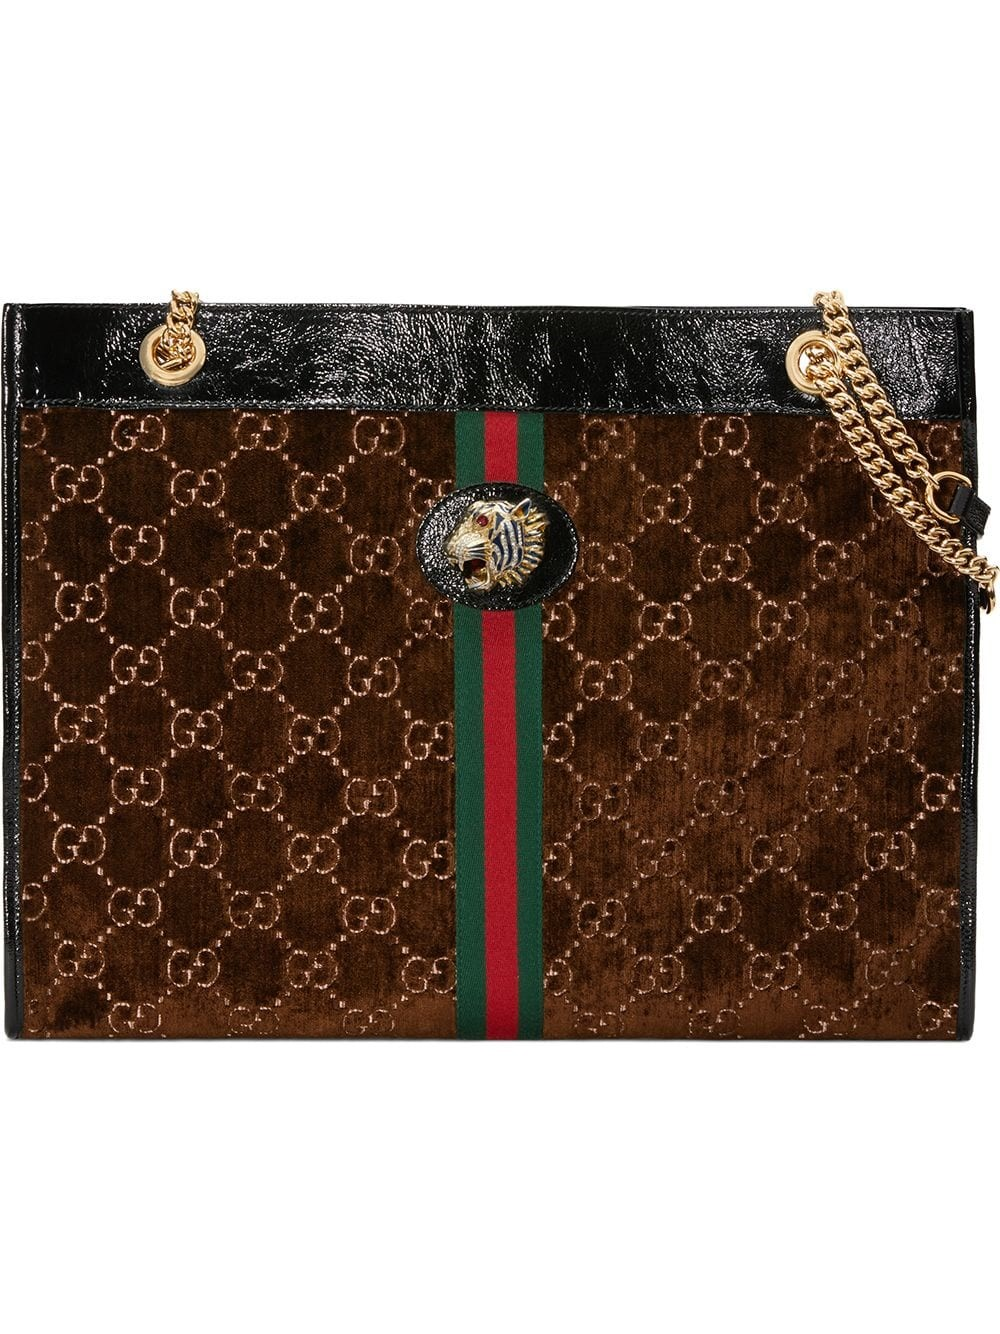 51d0739c7b32 gucci RAJAH BAG available on montiboutique.com - 27319